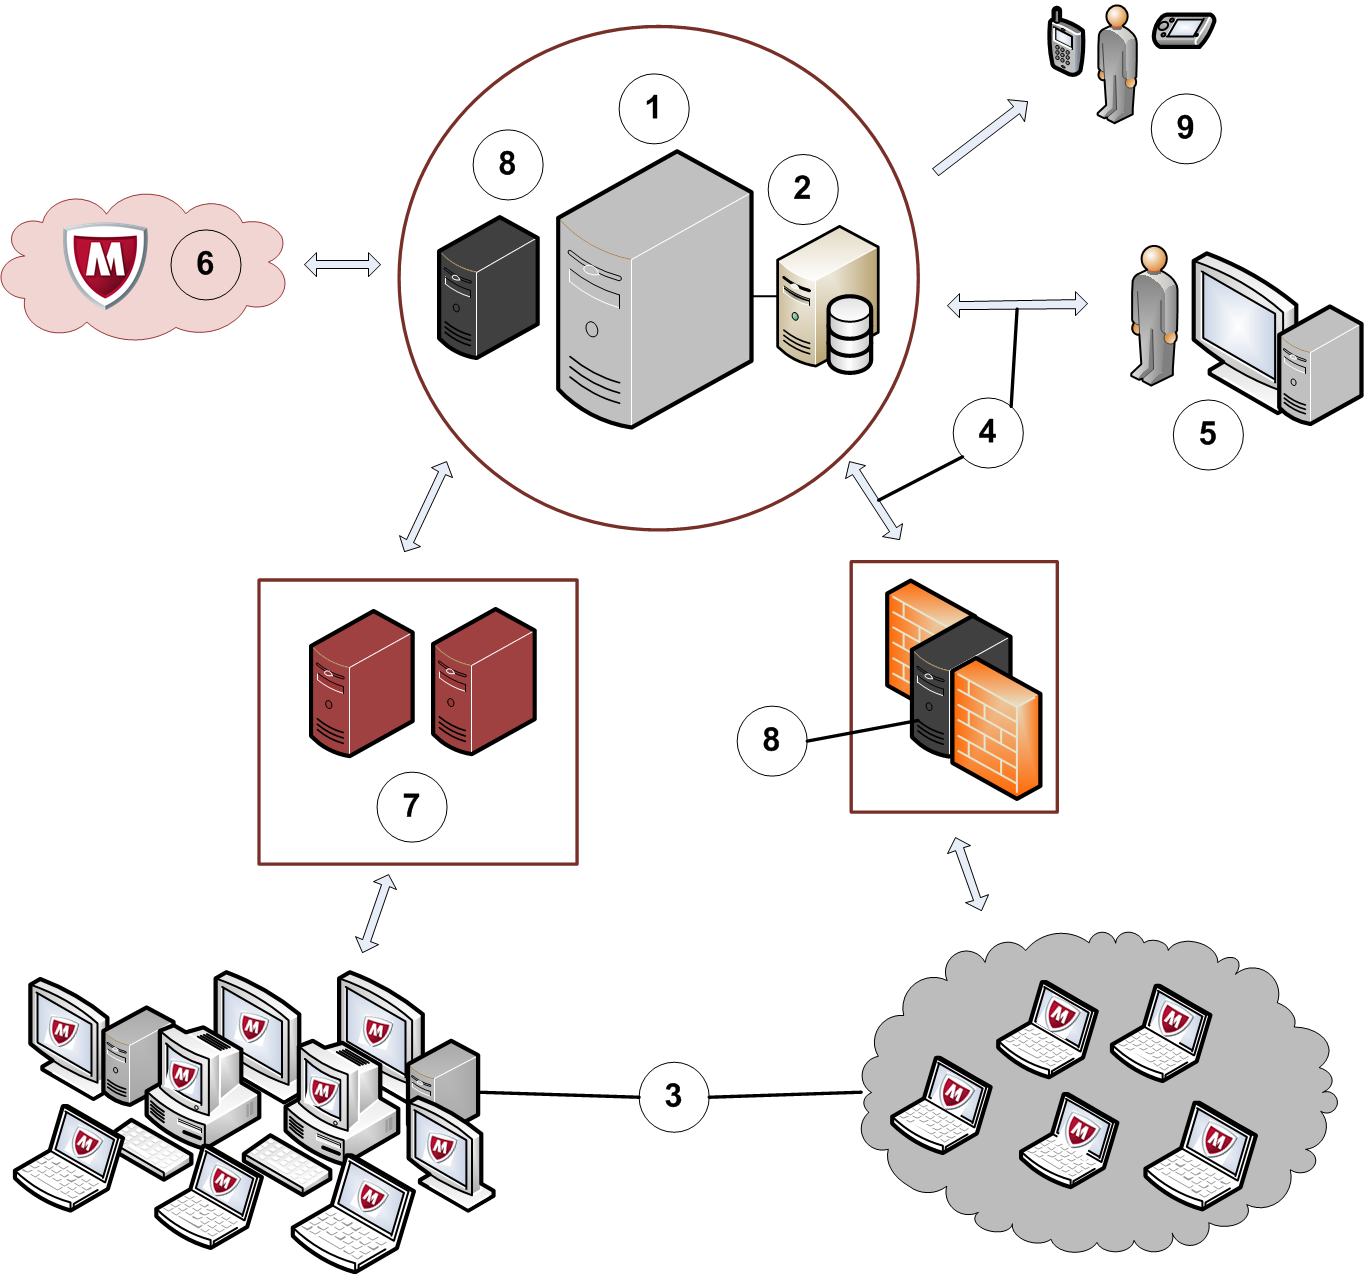 mcafee database security product guide